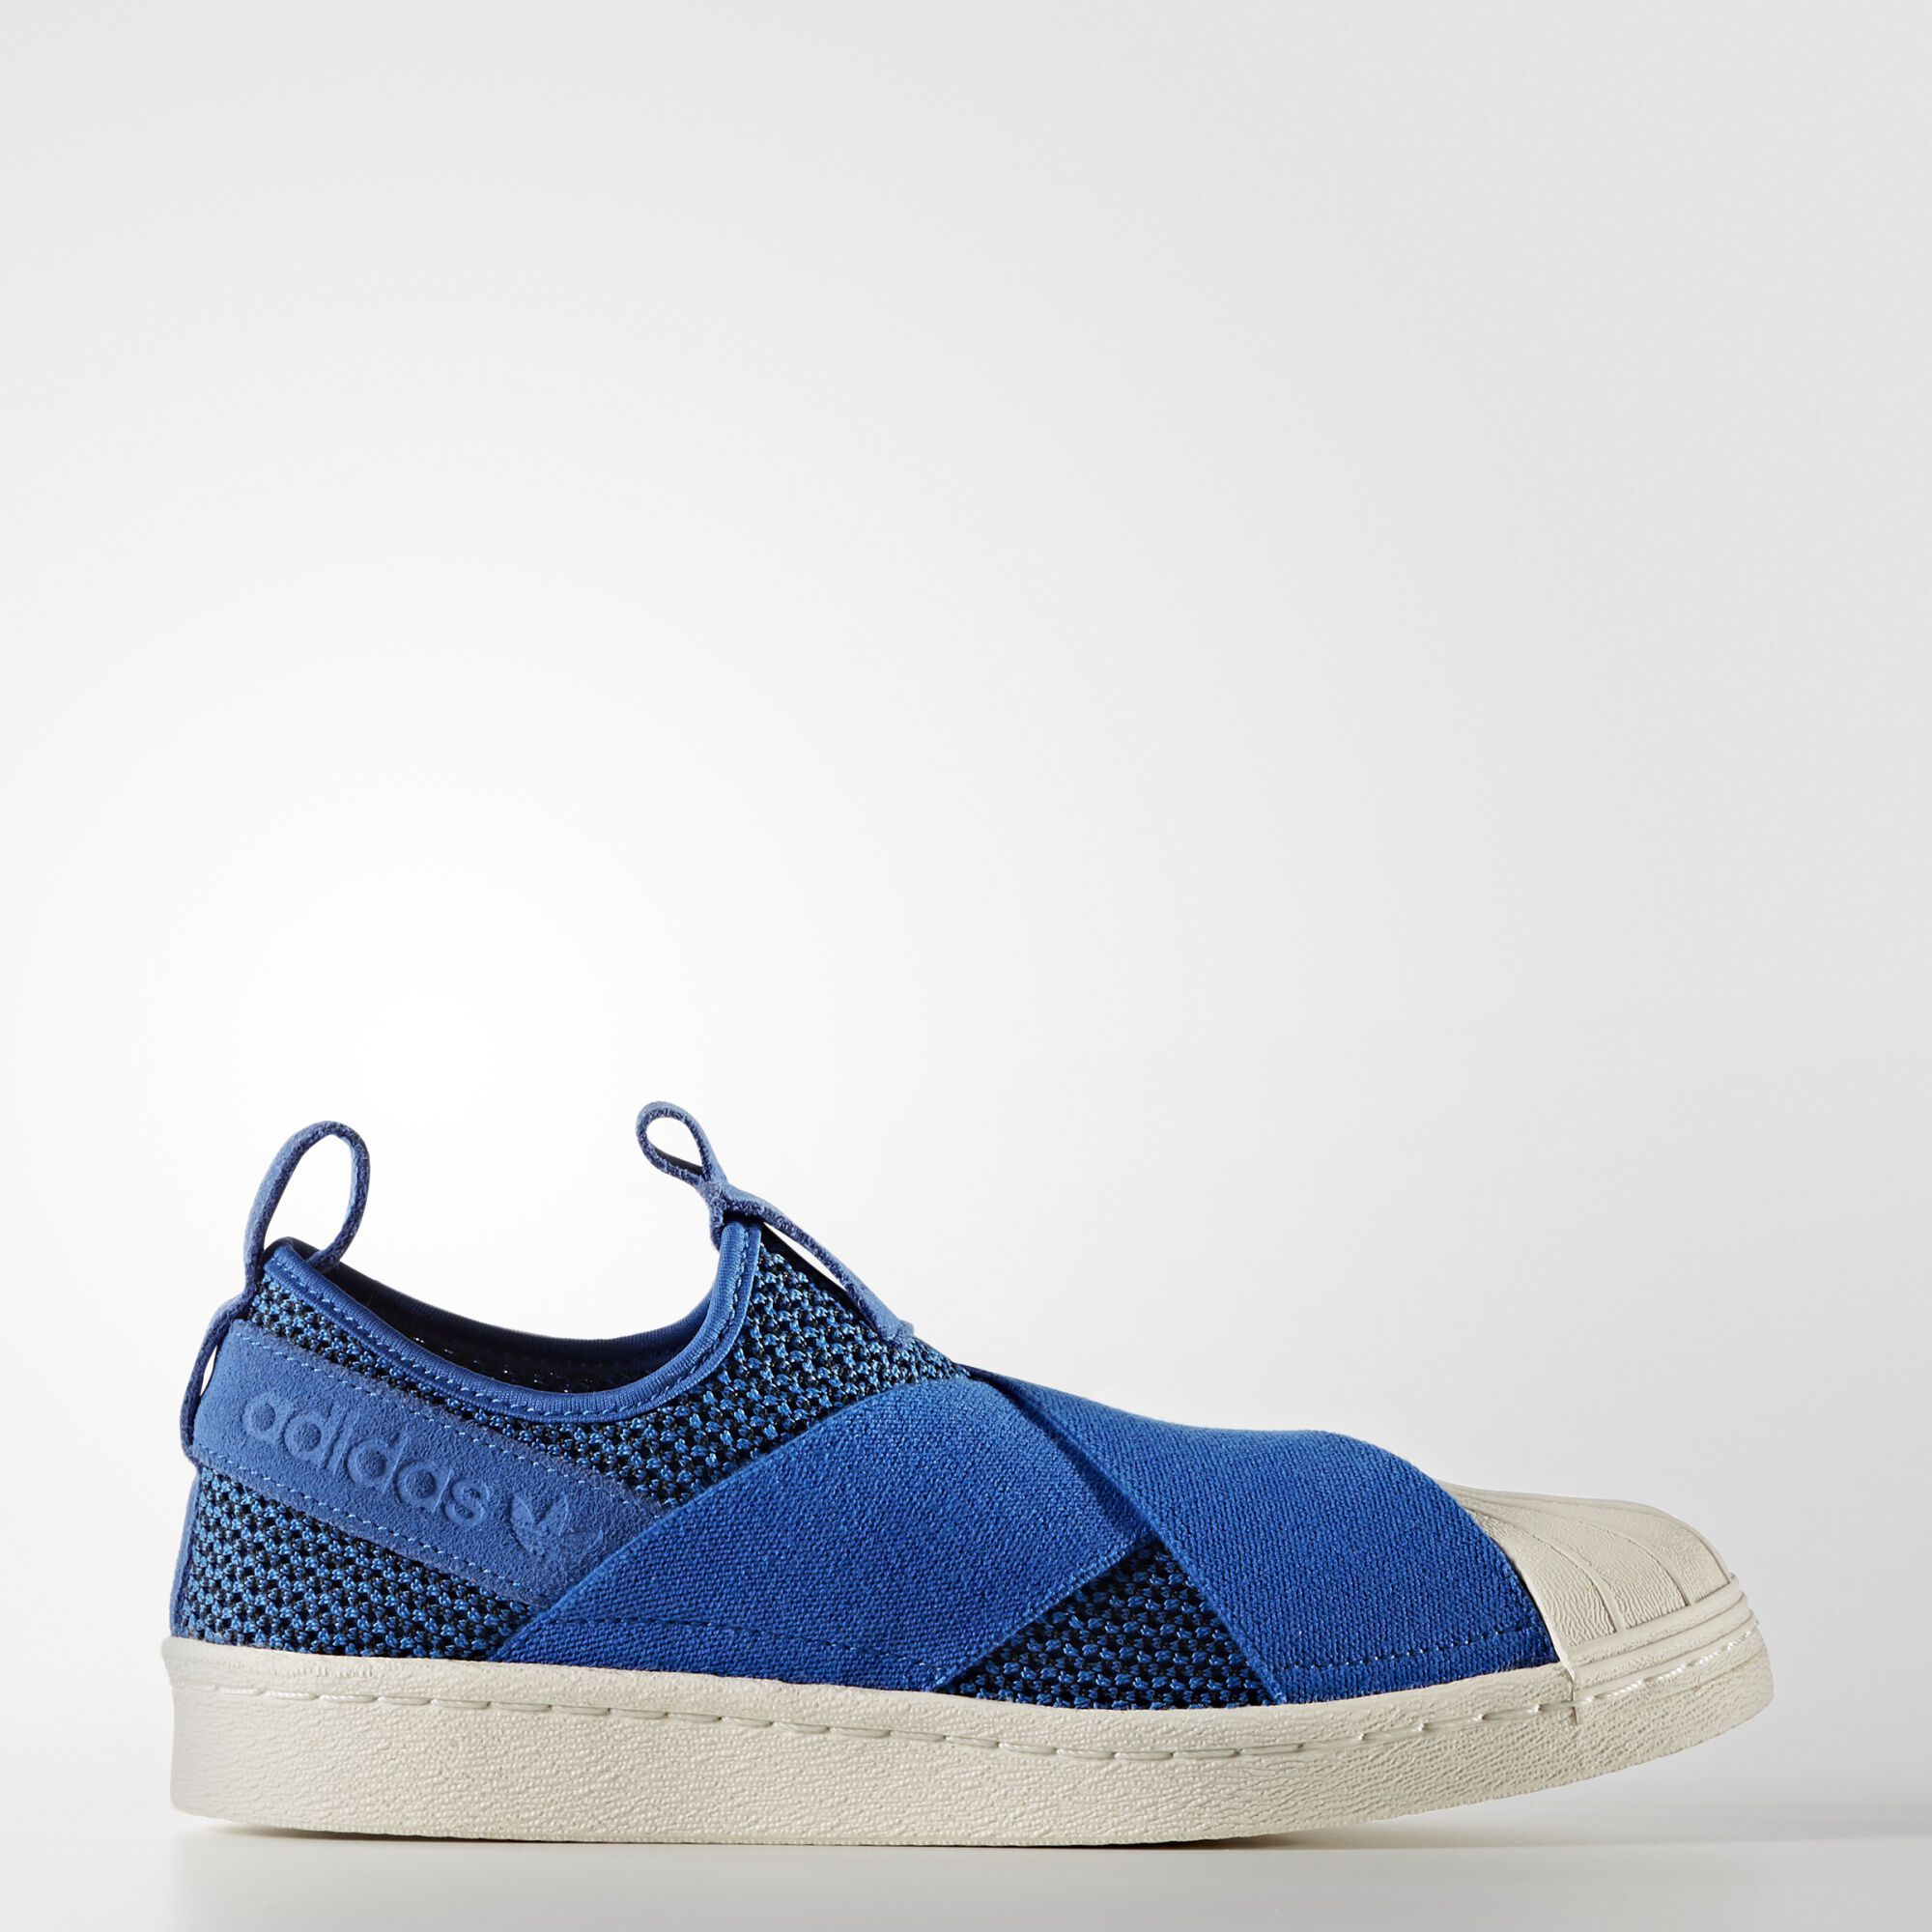 Adidas Superstar Flieder